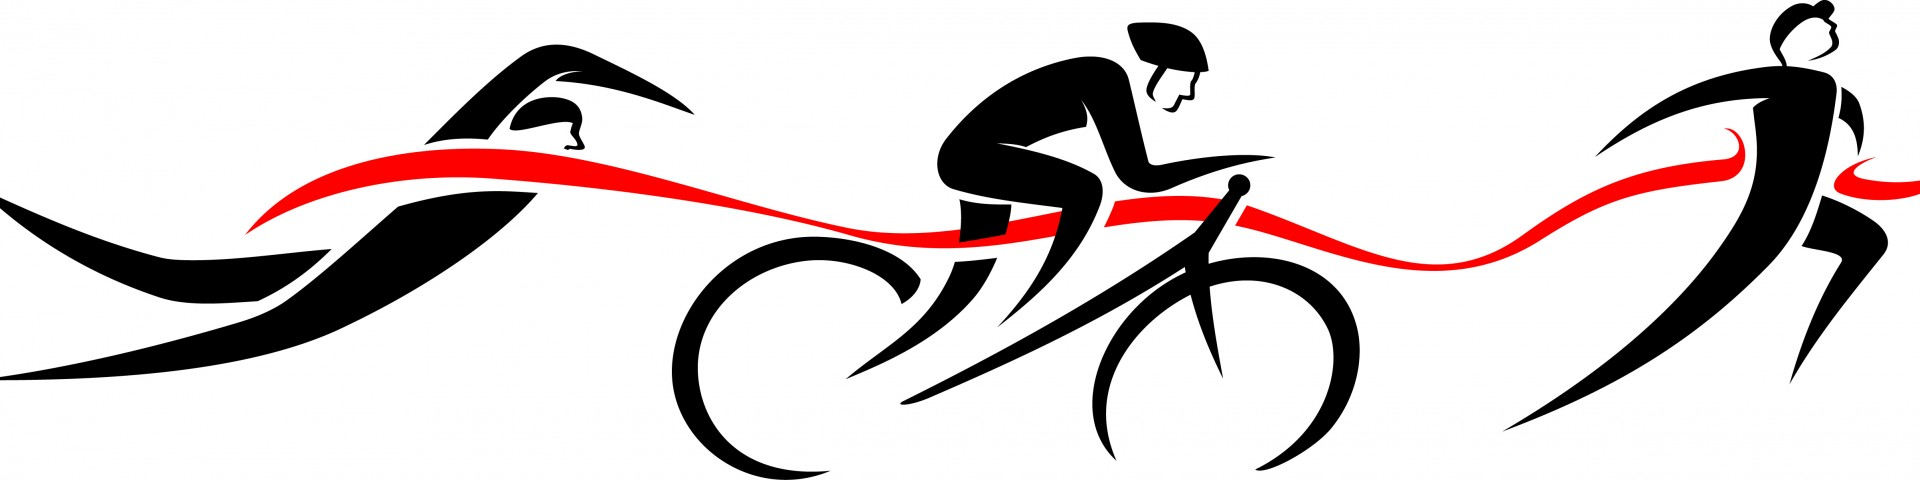 triathlon sport across staffordshire   stoke on trent clip art baseball player clip art baseball free